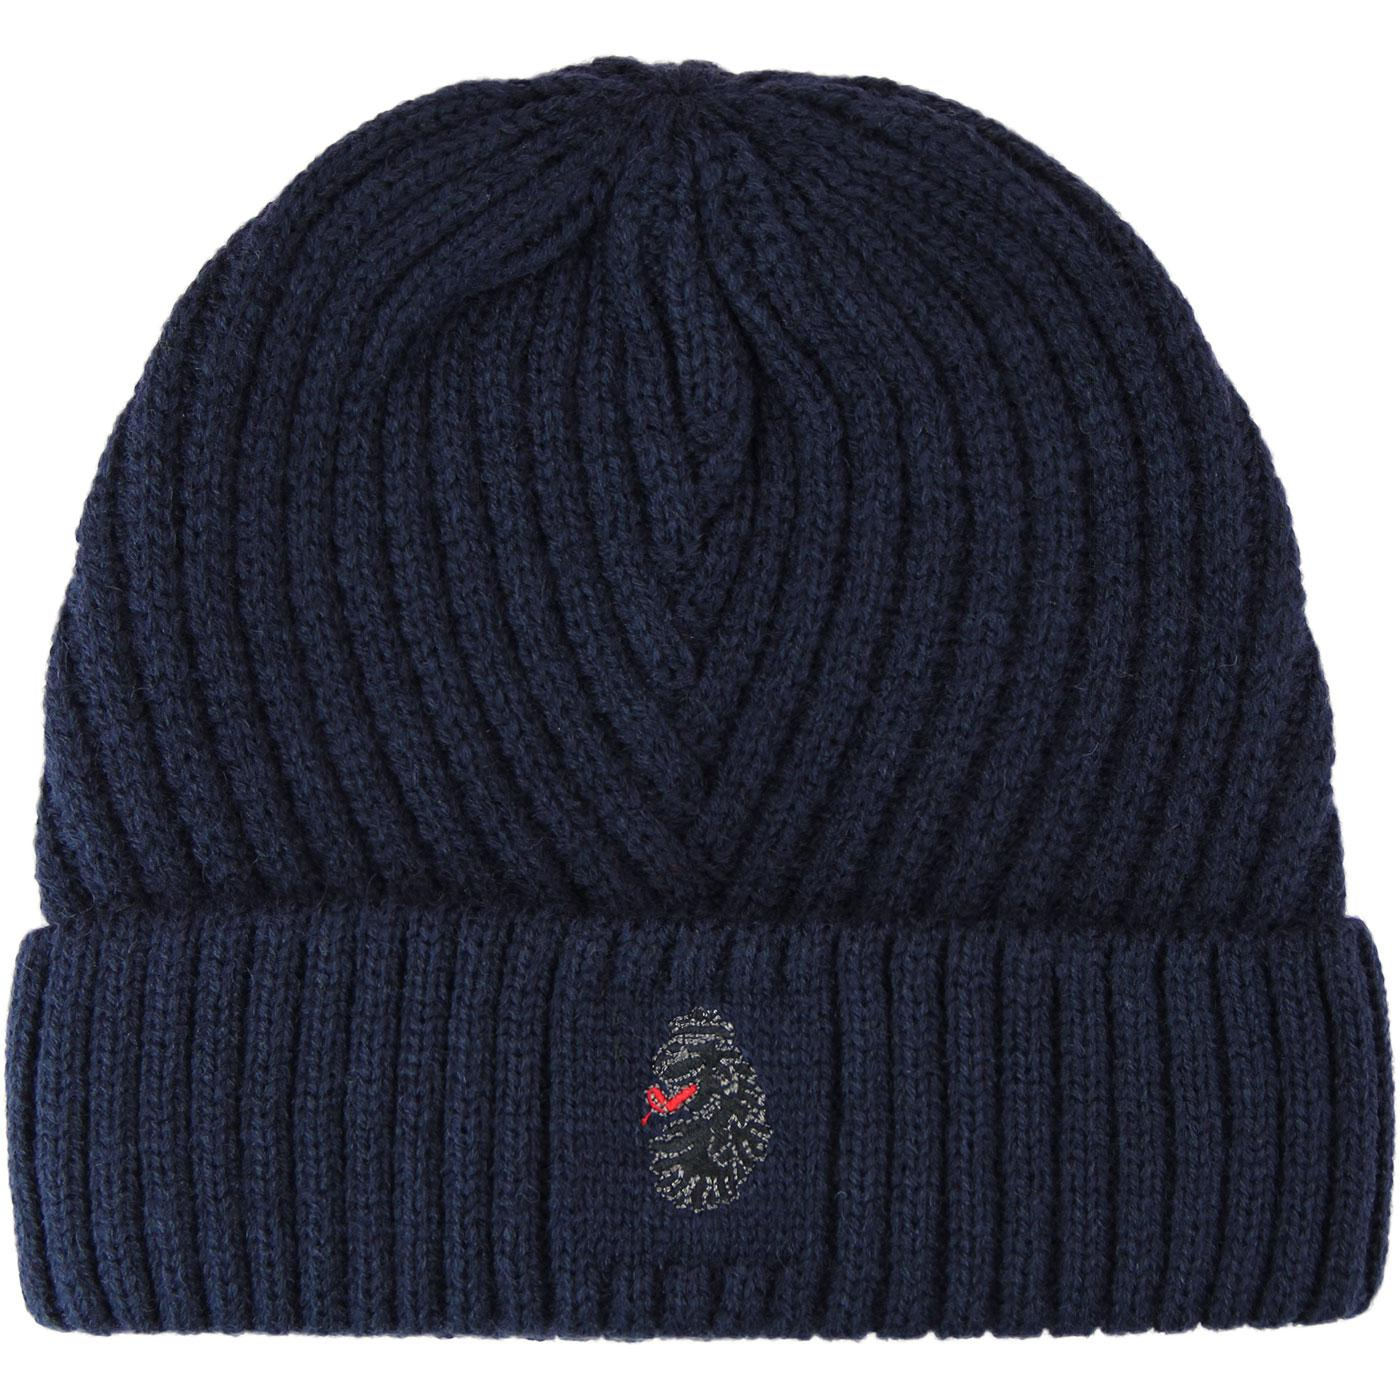 Osh LUKE 1977 Retro Ribbed Knitted Beanie Hat